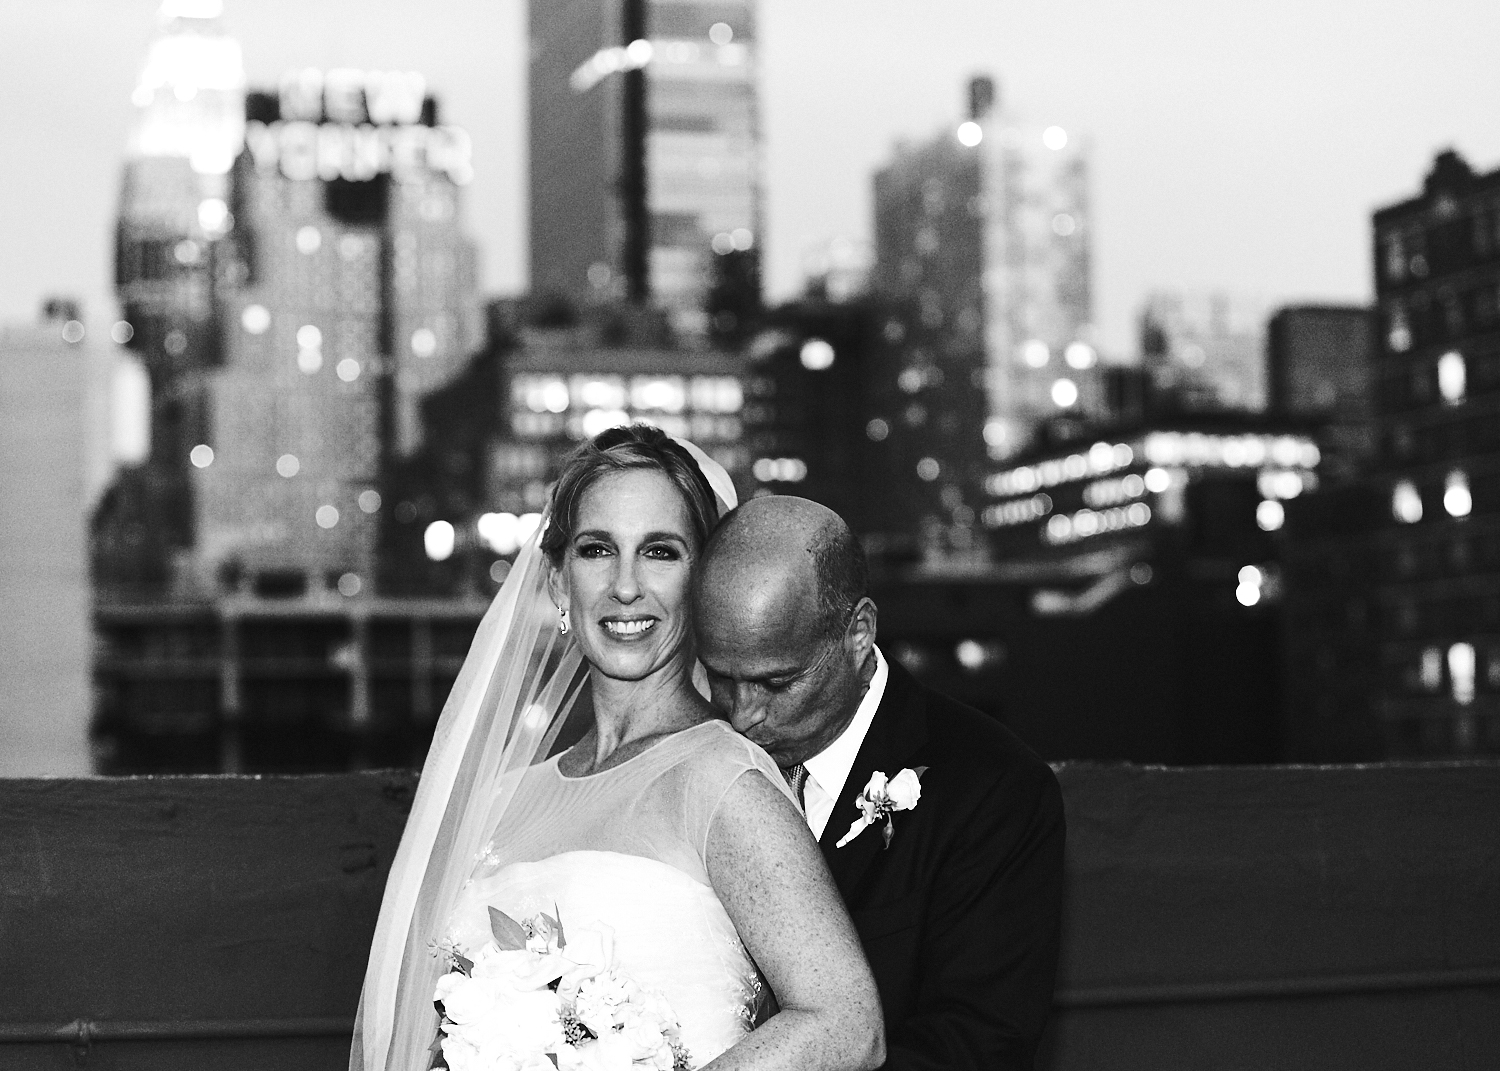 160917_M&L_HudsonMercantileWedding_By_BriJohnsonWeddings_0072.jpg